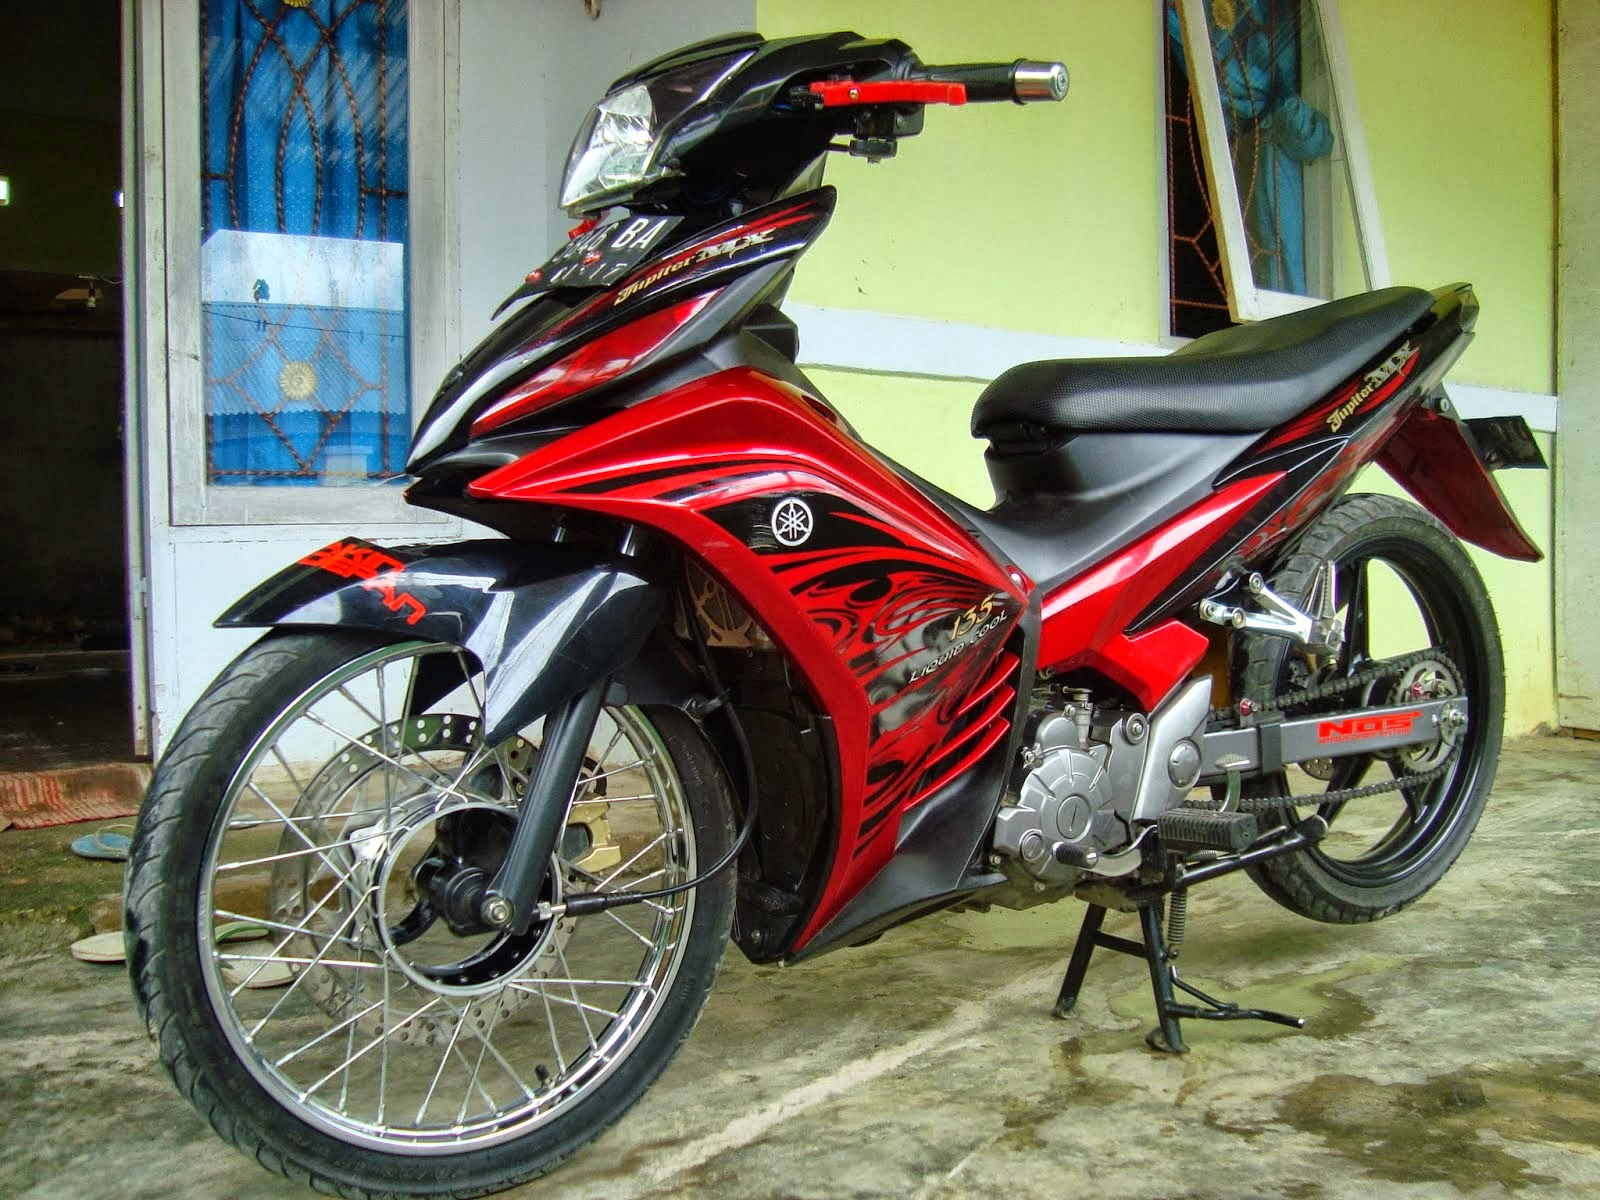 Modif New Jupiter Mx Underbone